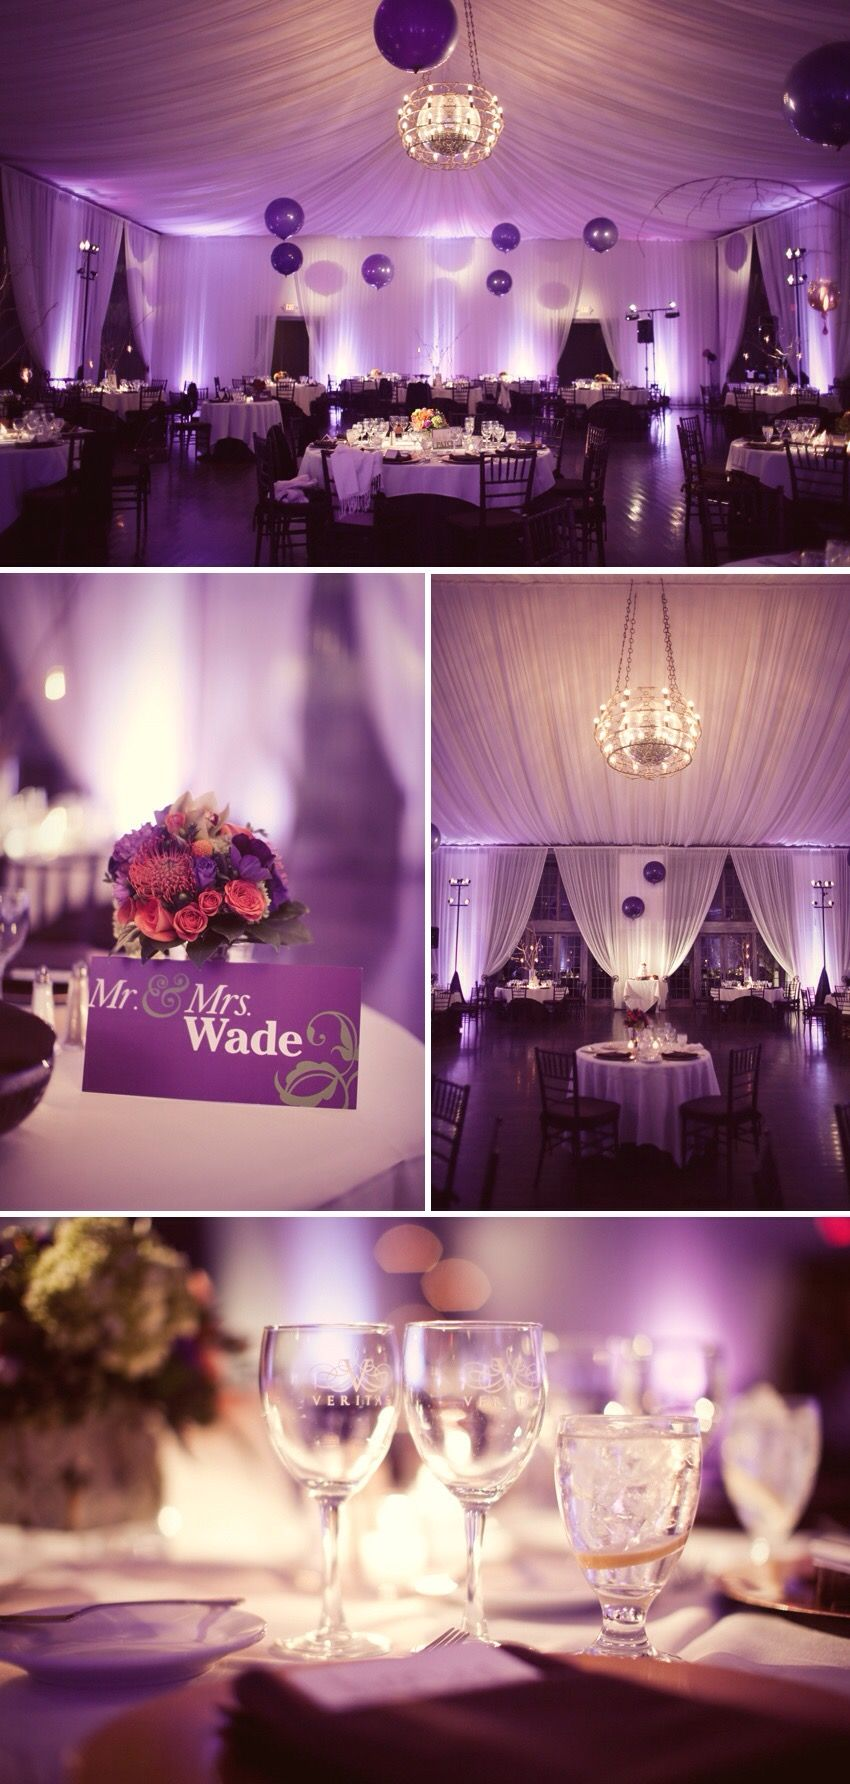 Lavender wedding decor ideas  Pin by Alicia Buford on Wedding ideas  Pinterest  Violets